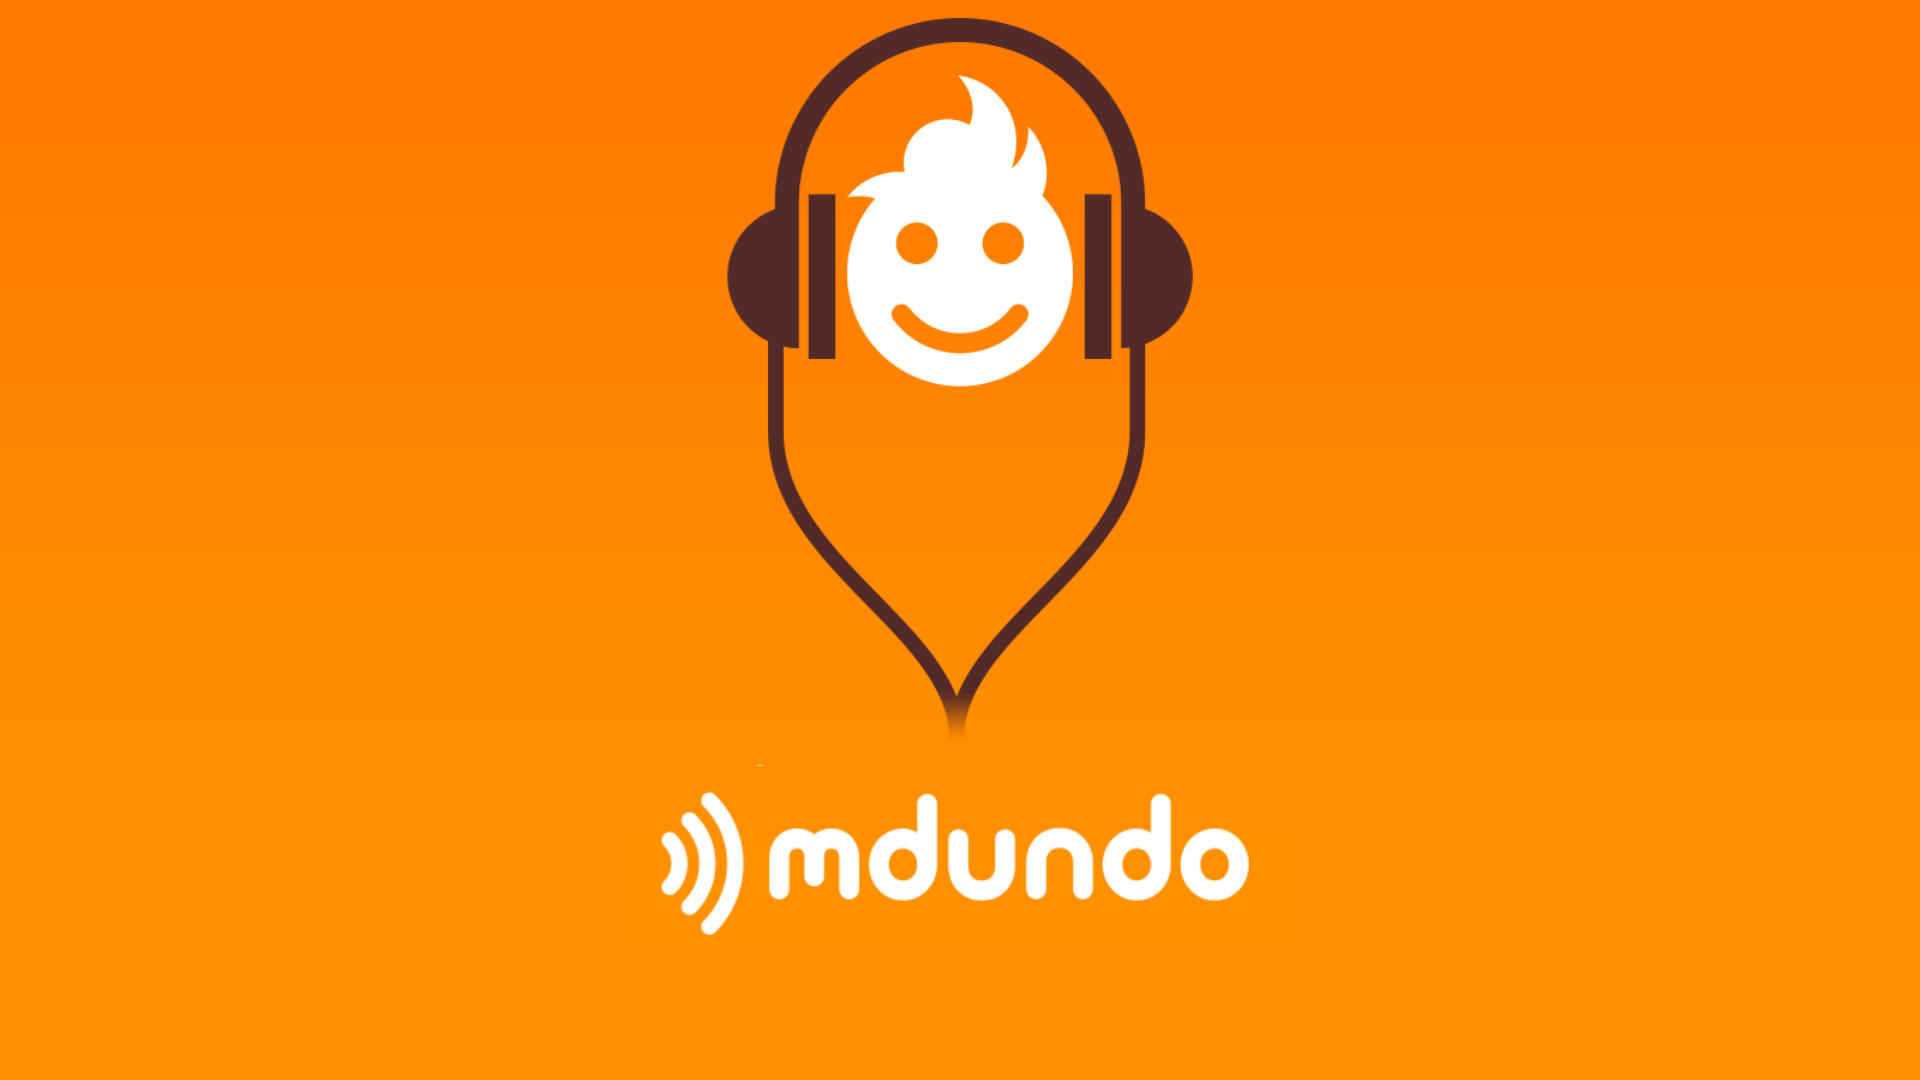 What Is Mdundo?